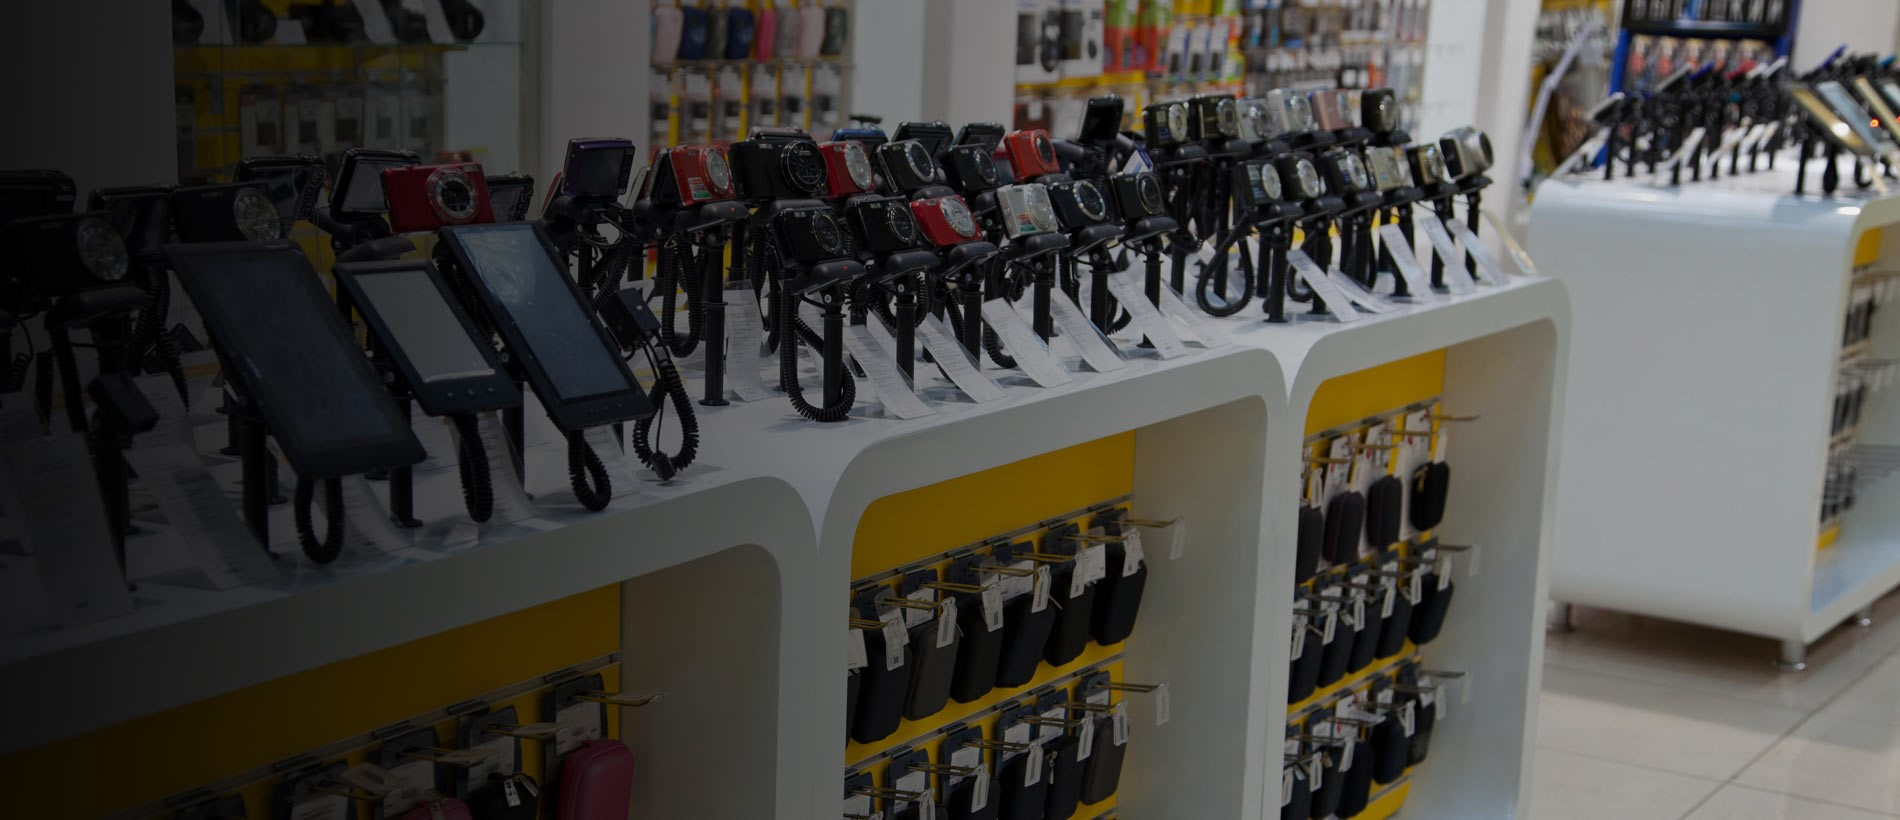 store displaying electronic products